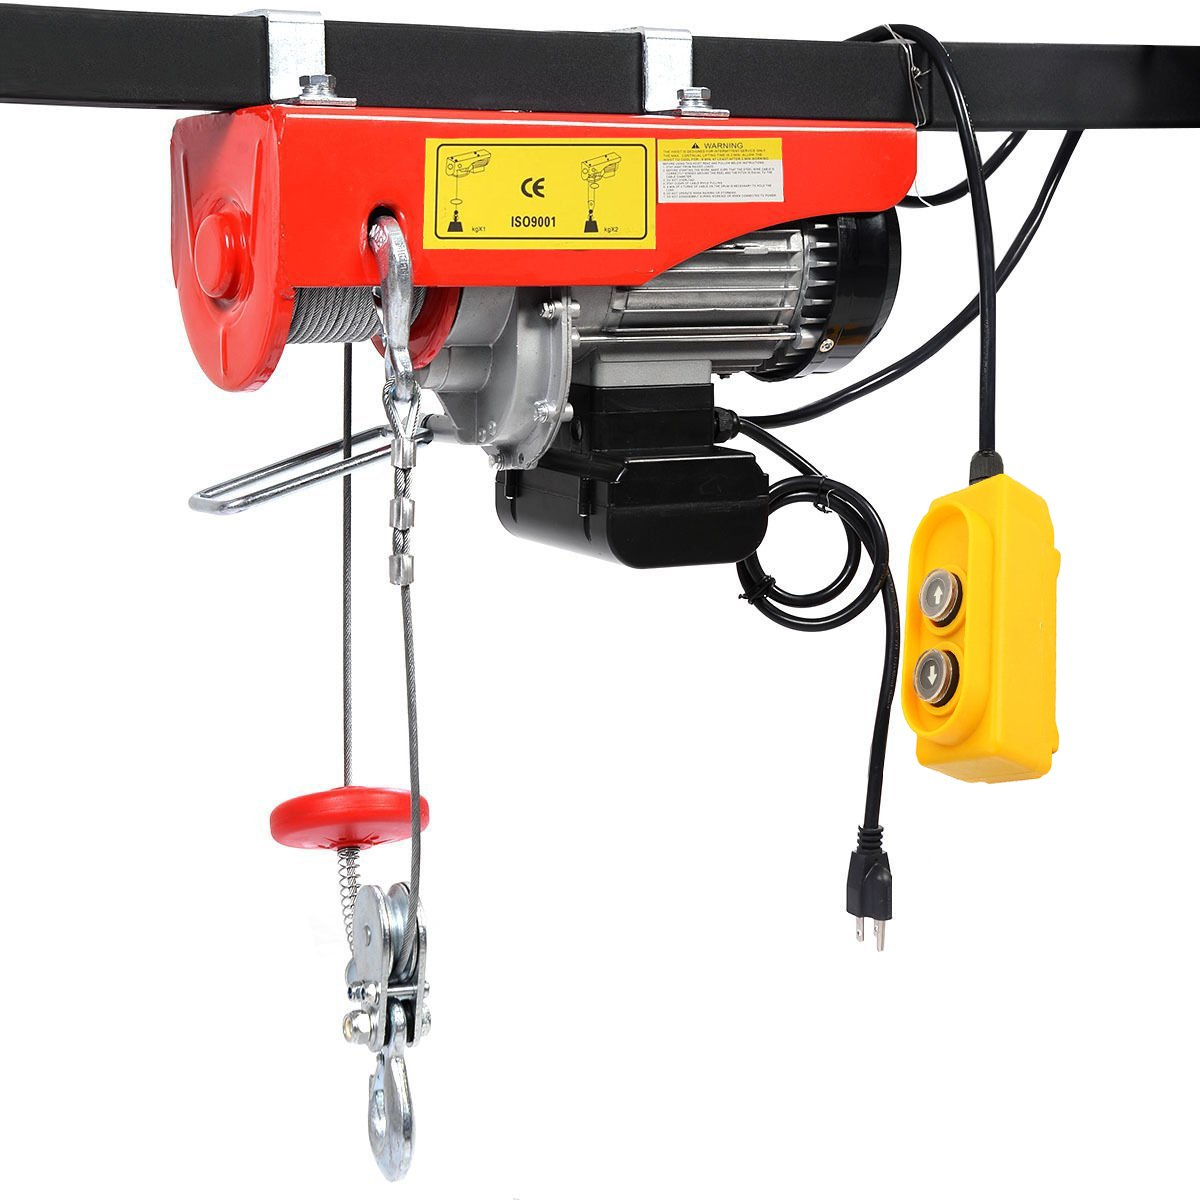 BEAMNOVA 1500lb Electric Hoist Lift Overhead Winch with Remote Control Single/Double Slings